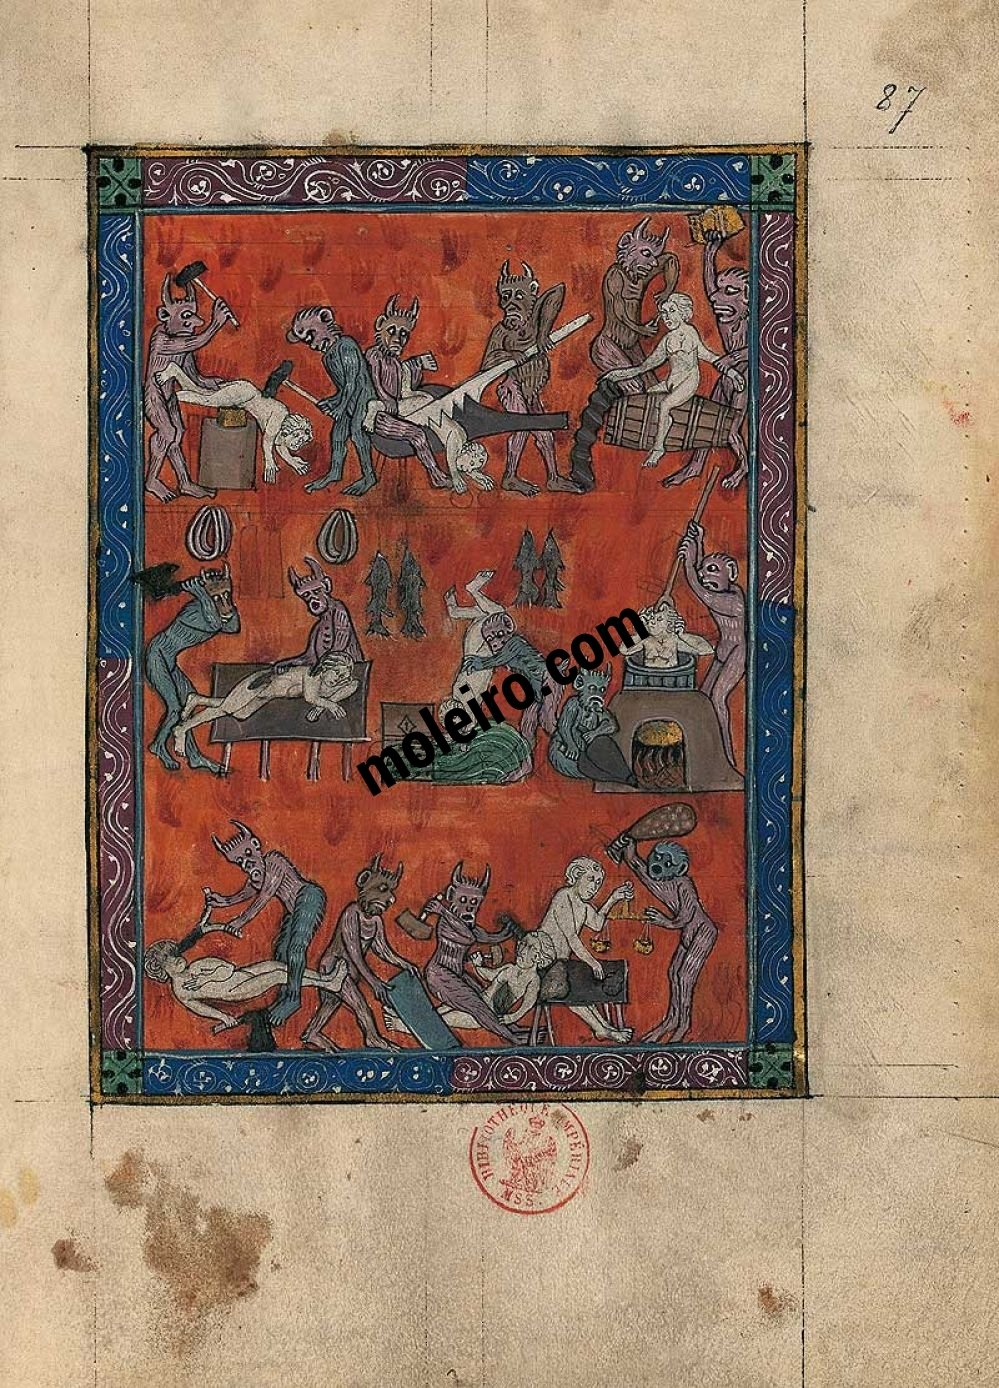 Folder of 5 prints from the Apocalypse of 1313 The Hell of trades, f. 87r